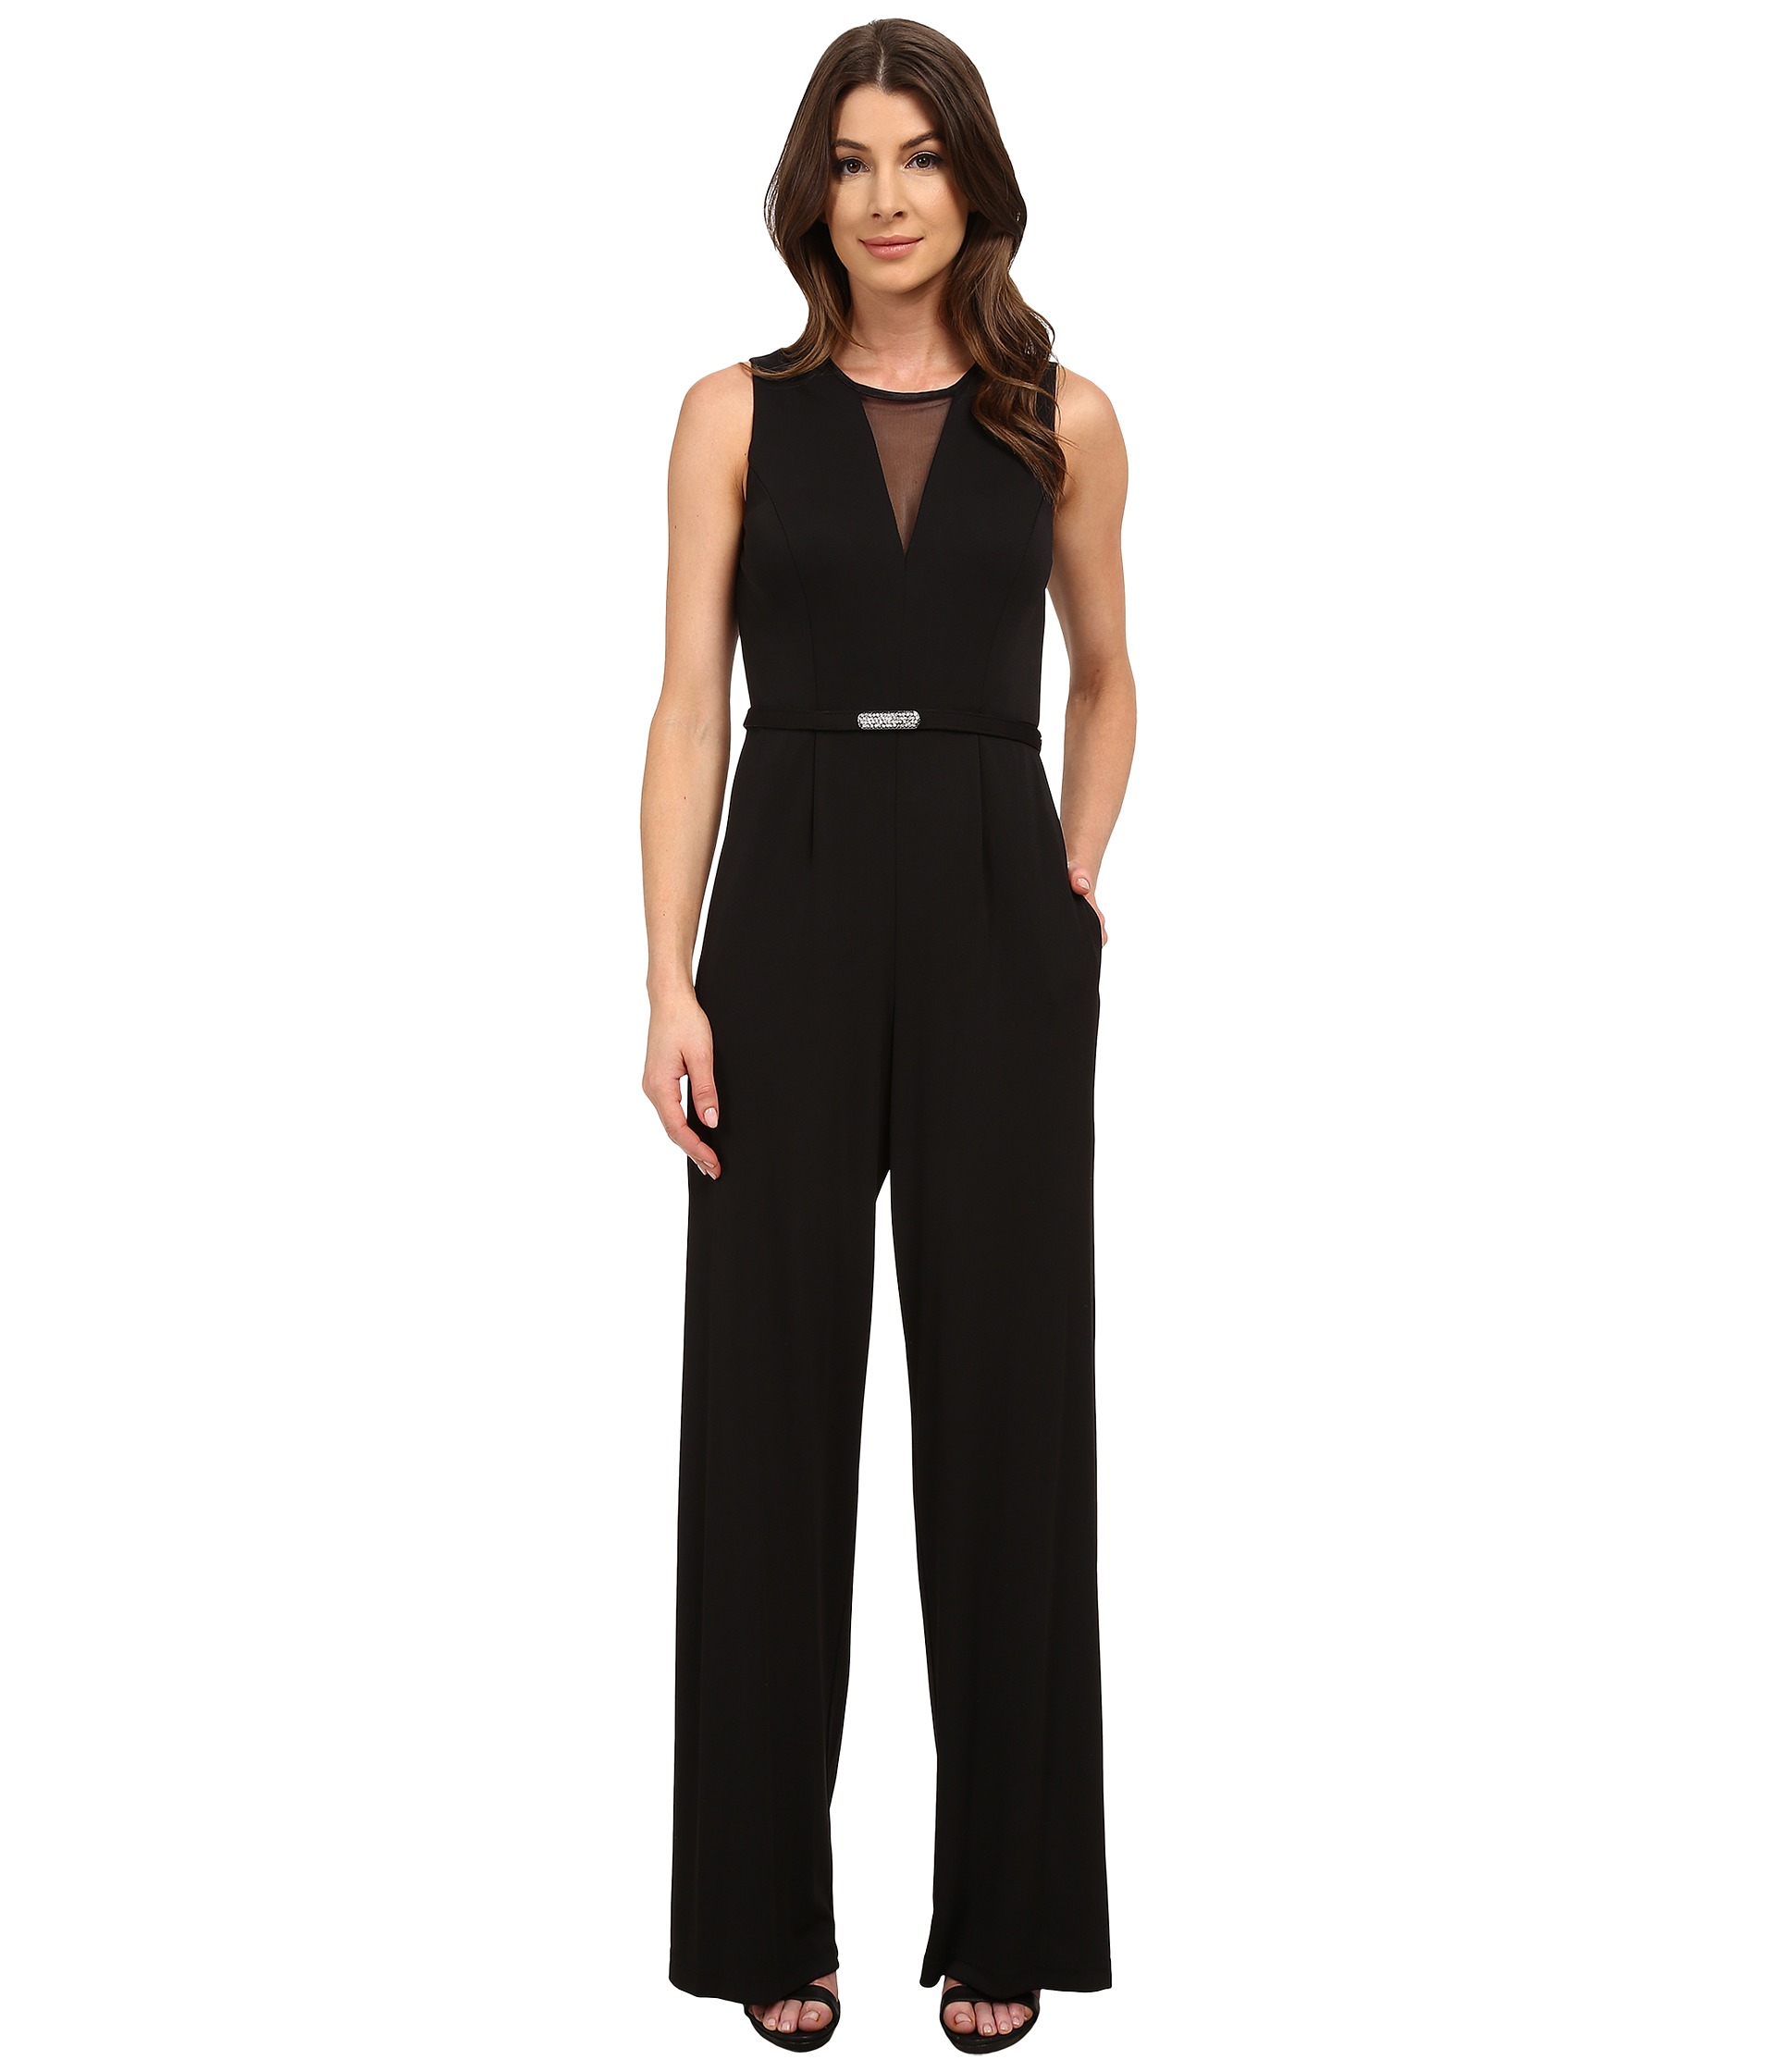 6bc8f0c01c3f Lyst - Vince Camuto Illusion V-neck Sleeveless Jumpsuit in Black